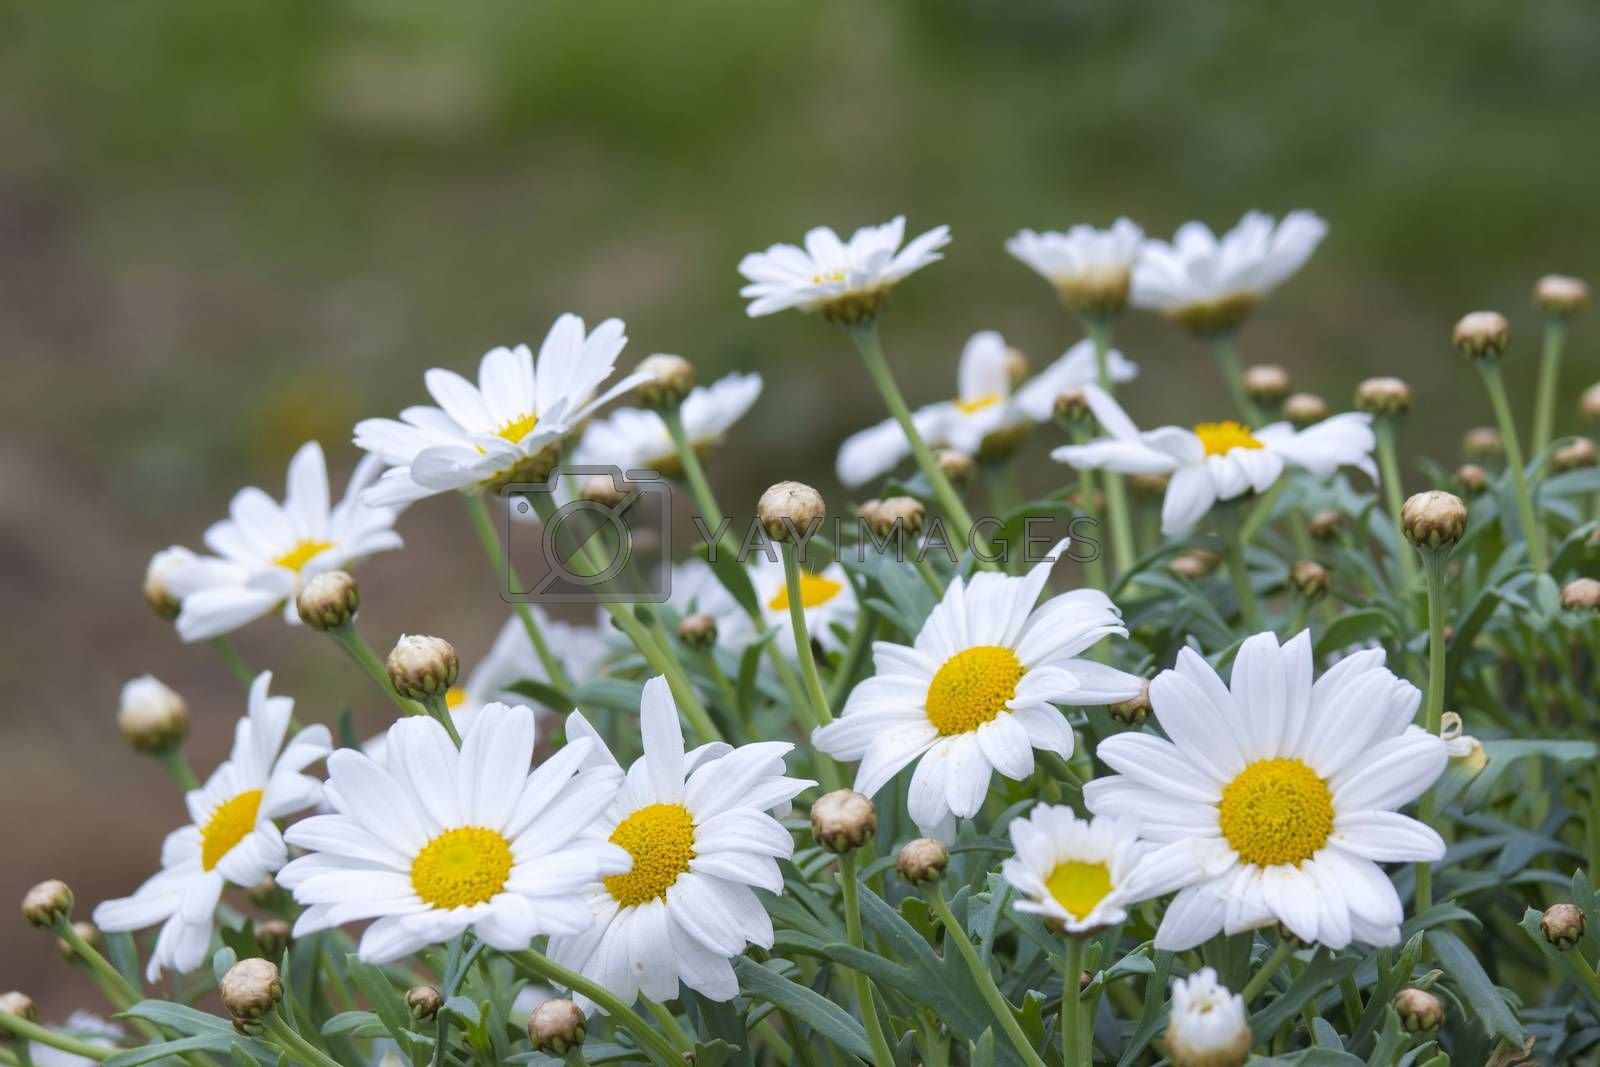 Royalty free image of daisies in the nature by miradrozdowski